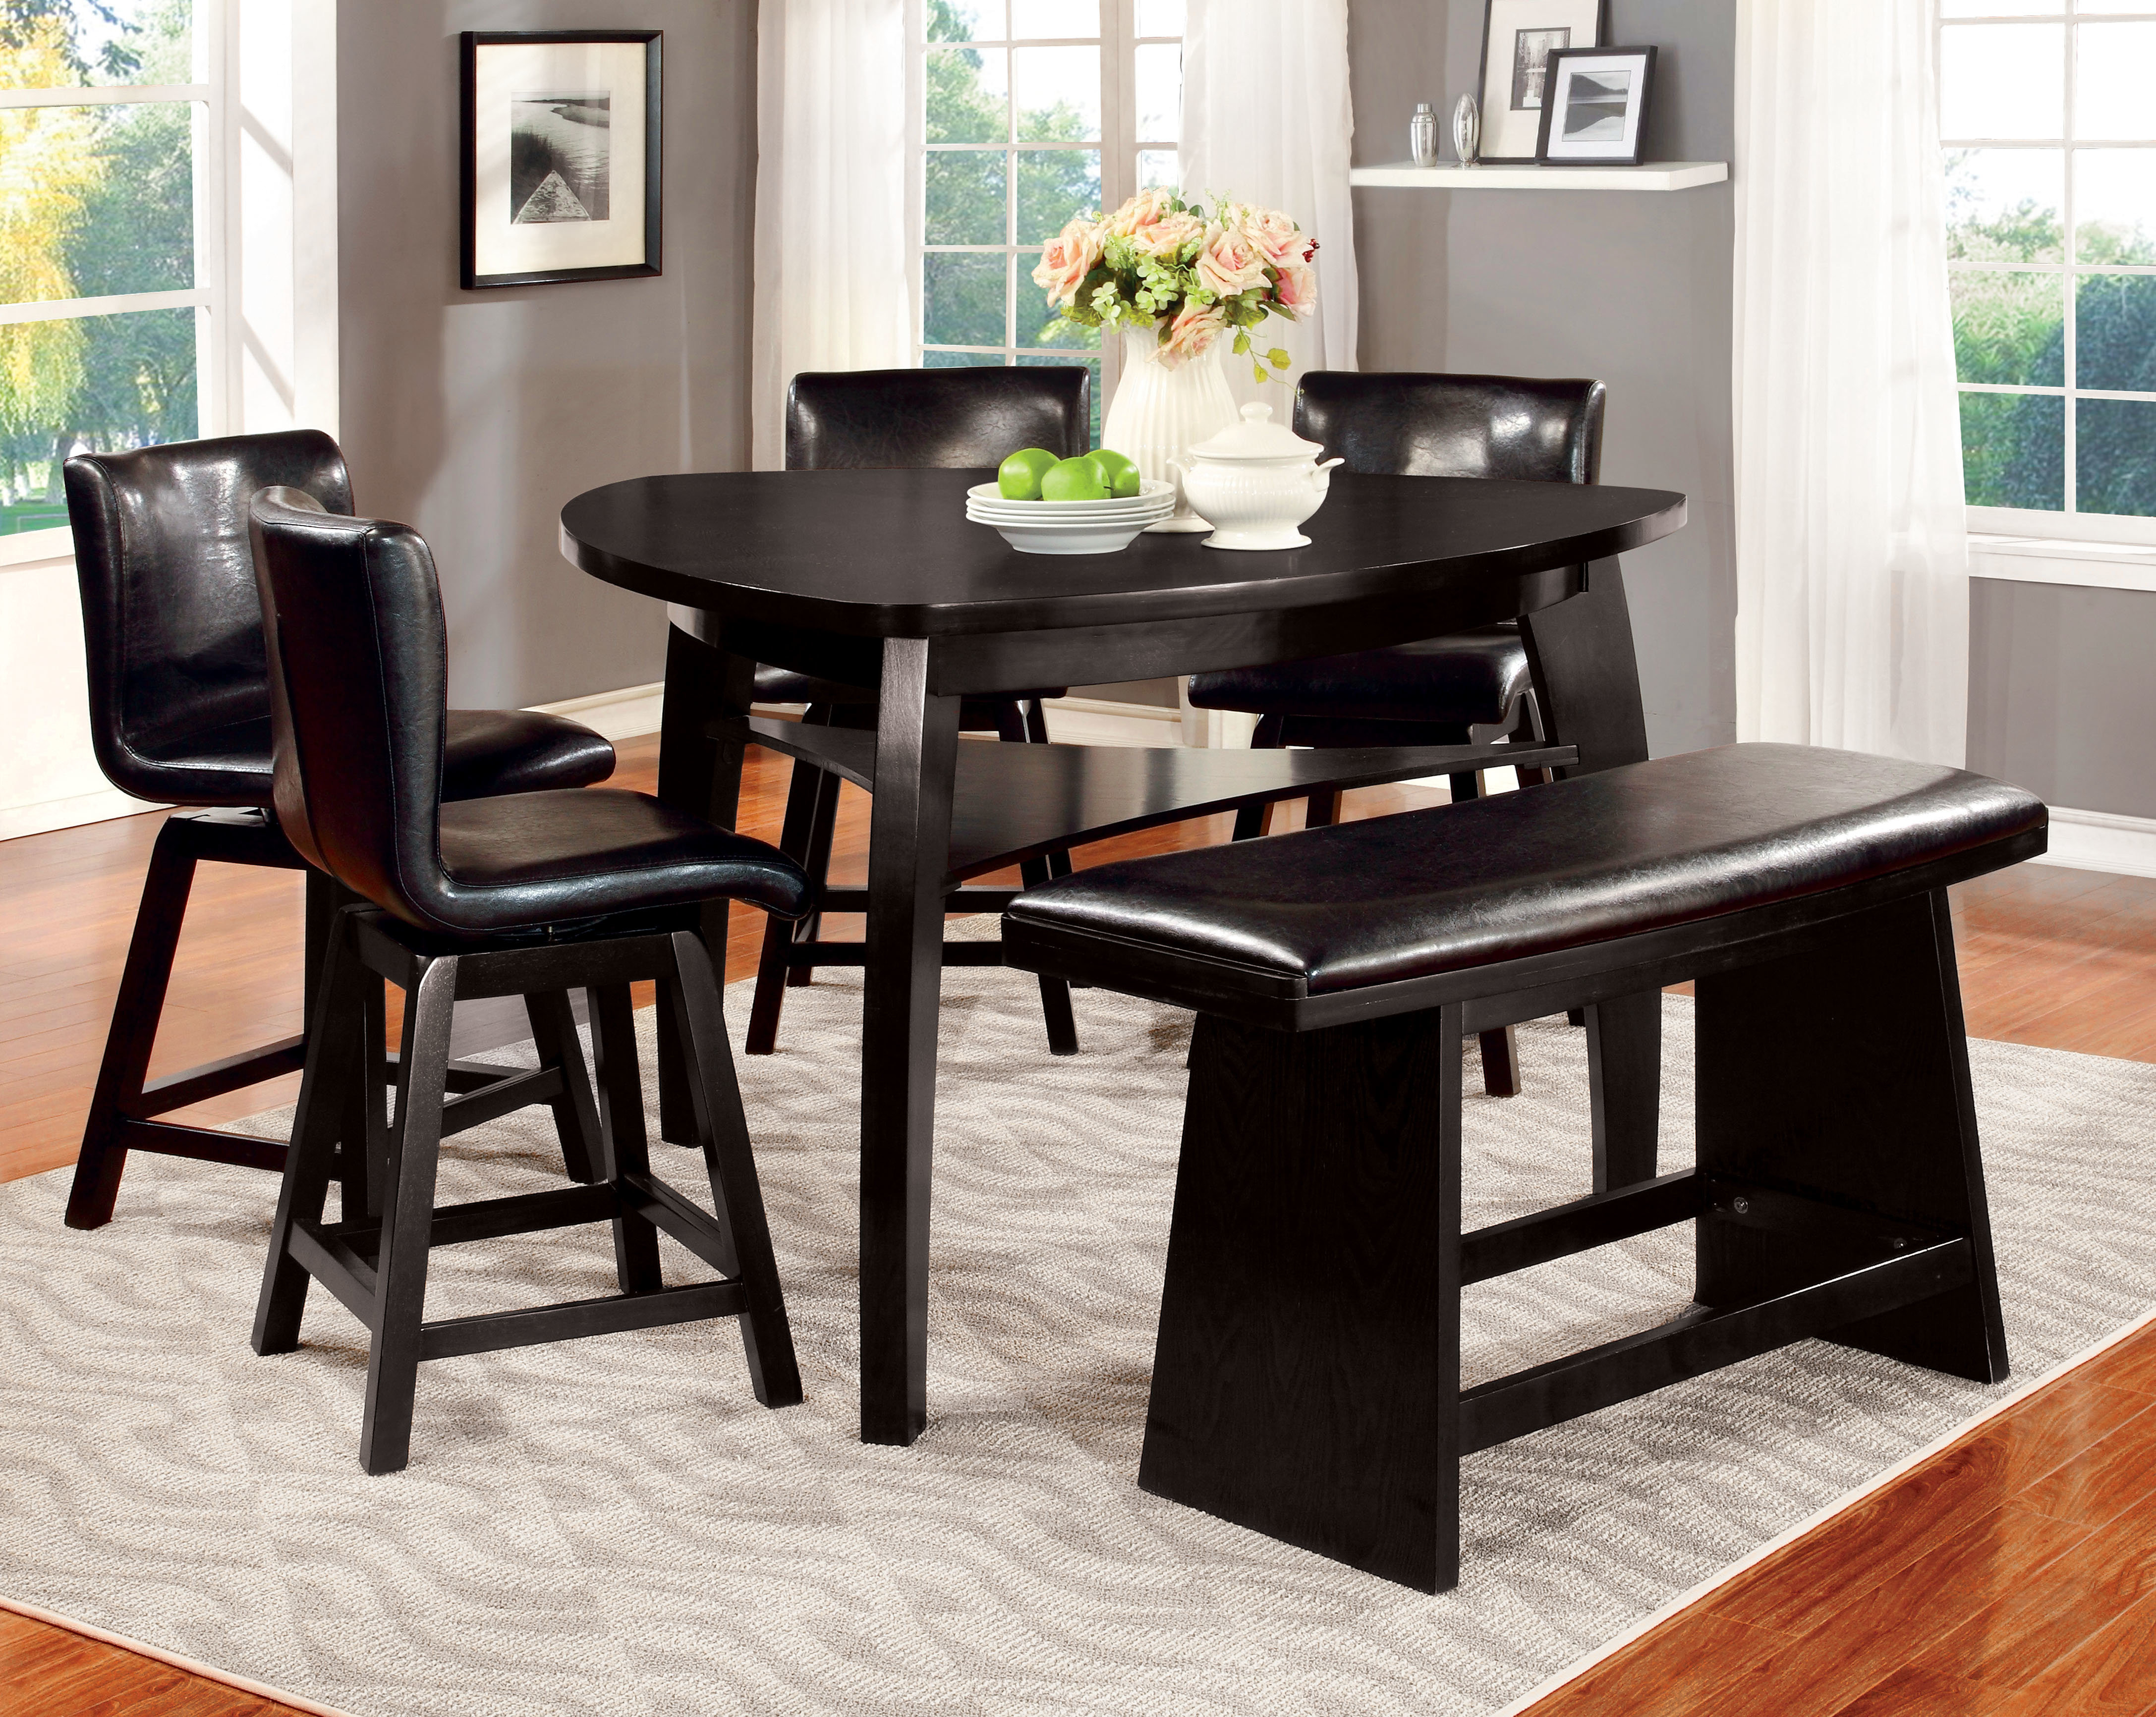 Lawrence 6 Piece Counter Height Pub Table Set With Regard To 2018 Anette 3 Piece Counter Height Dining Sets (View 14 of 20)